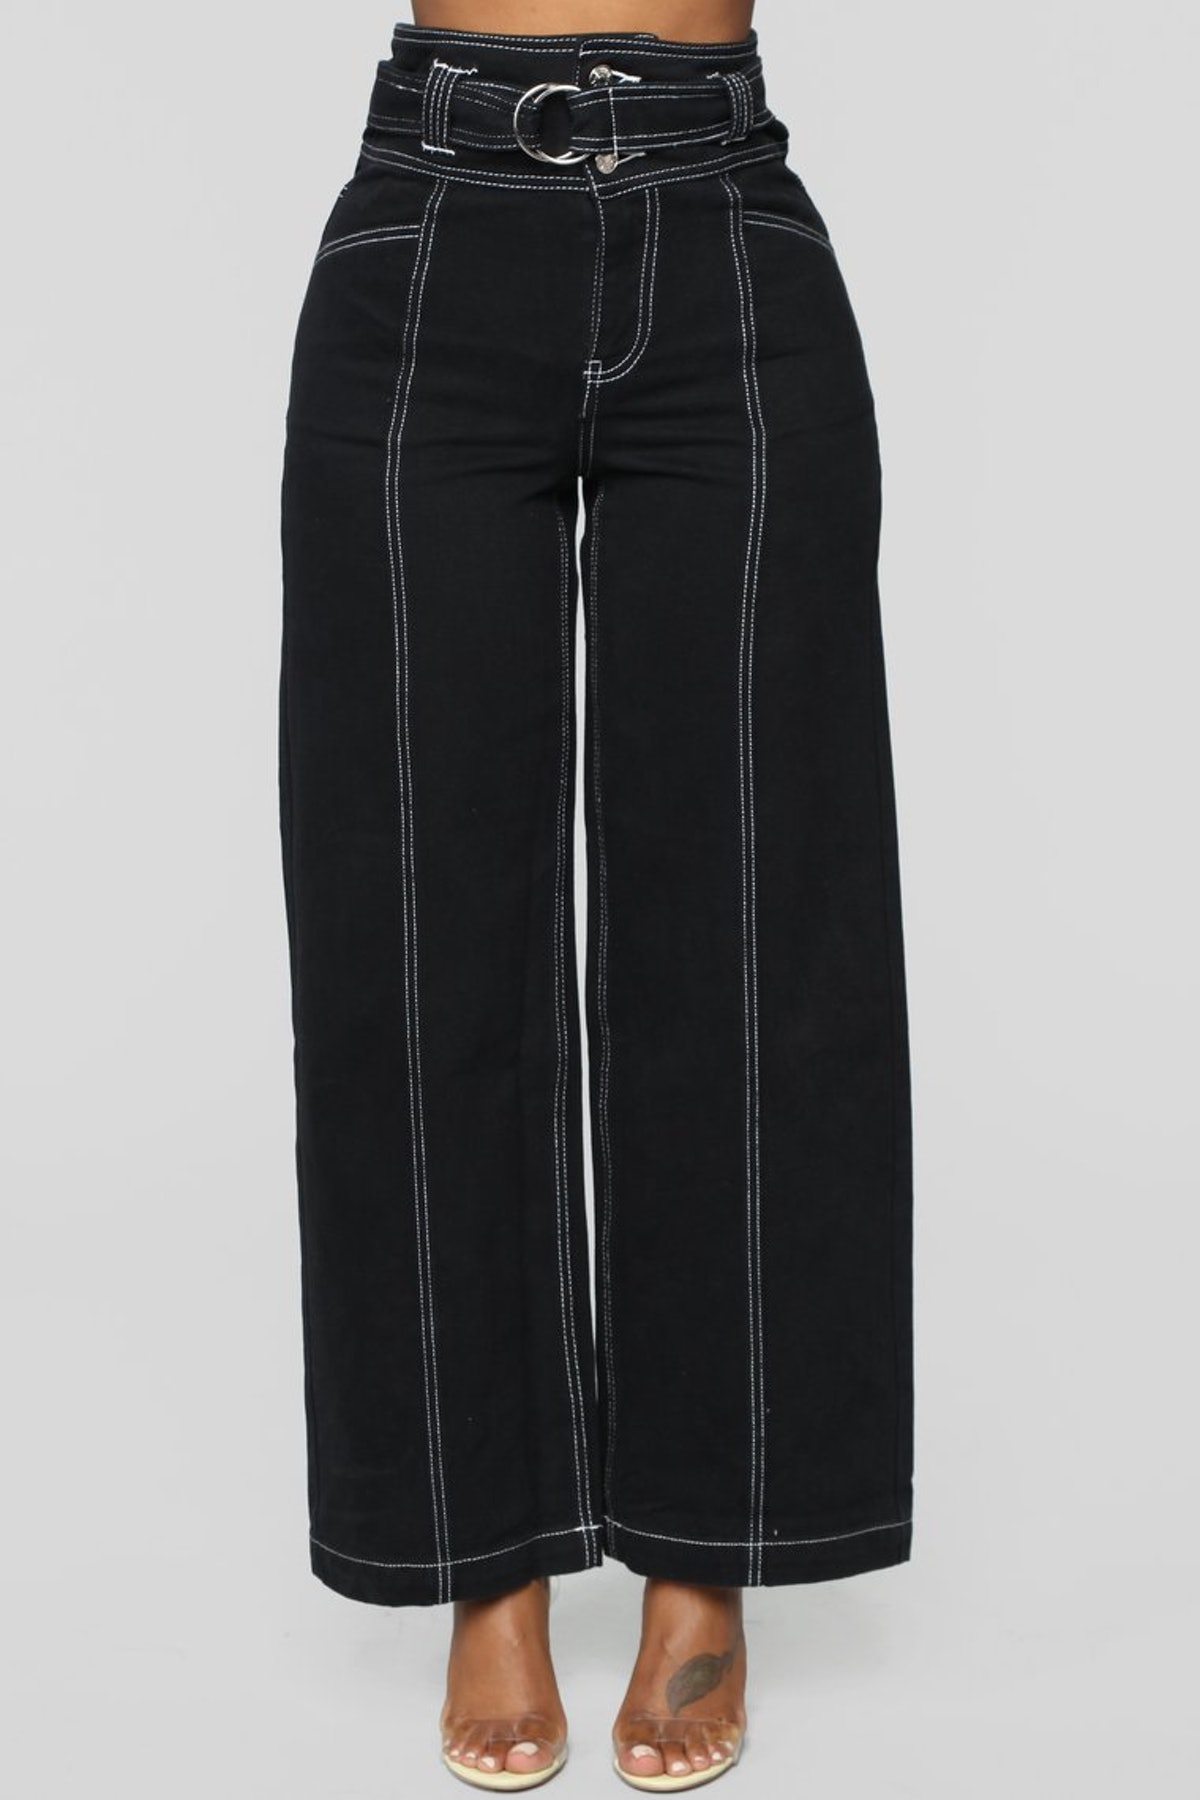 The New Me High Rise Jeans